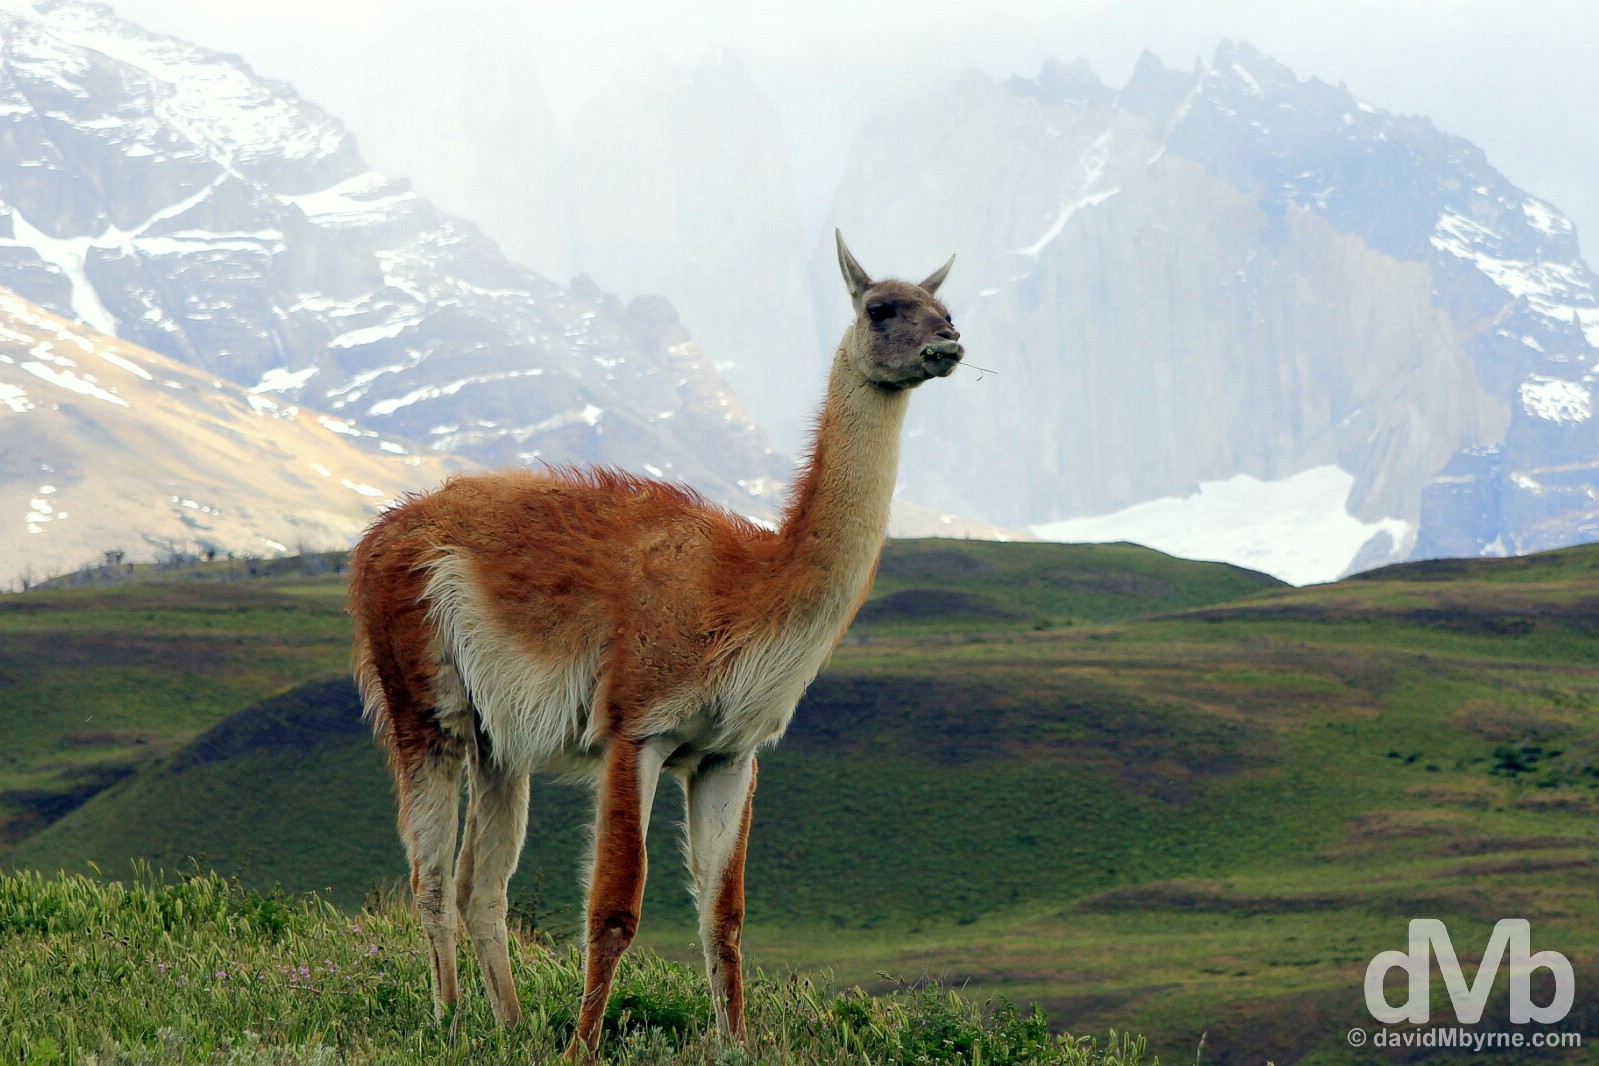 A guanaco, a wild llama, in Torres del Paine National Park, Chile. November 24, 2015.